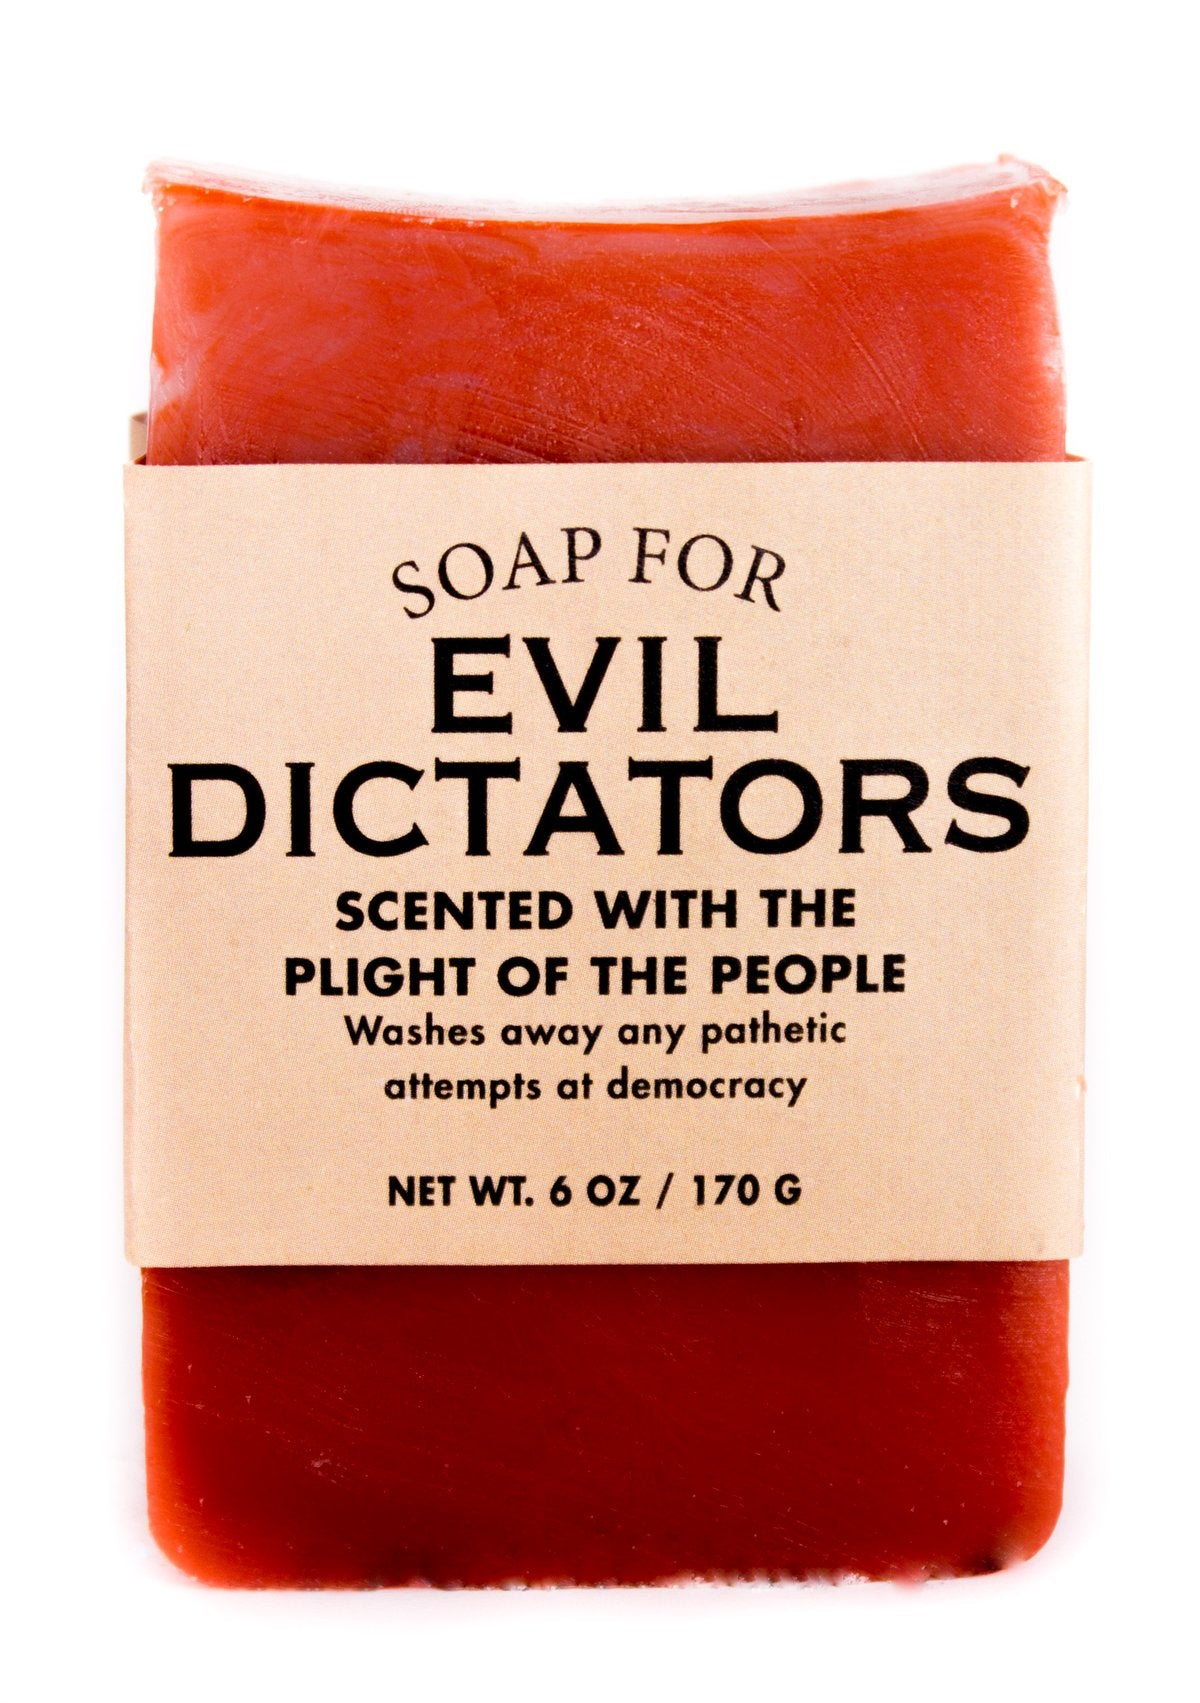 Soap for Evil Dictators - Heart of the Home PA